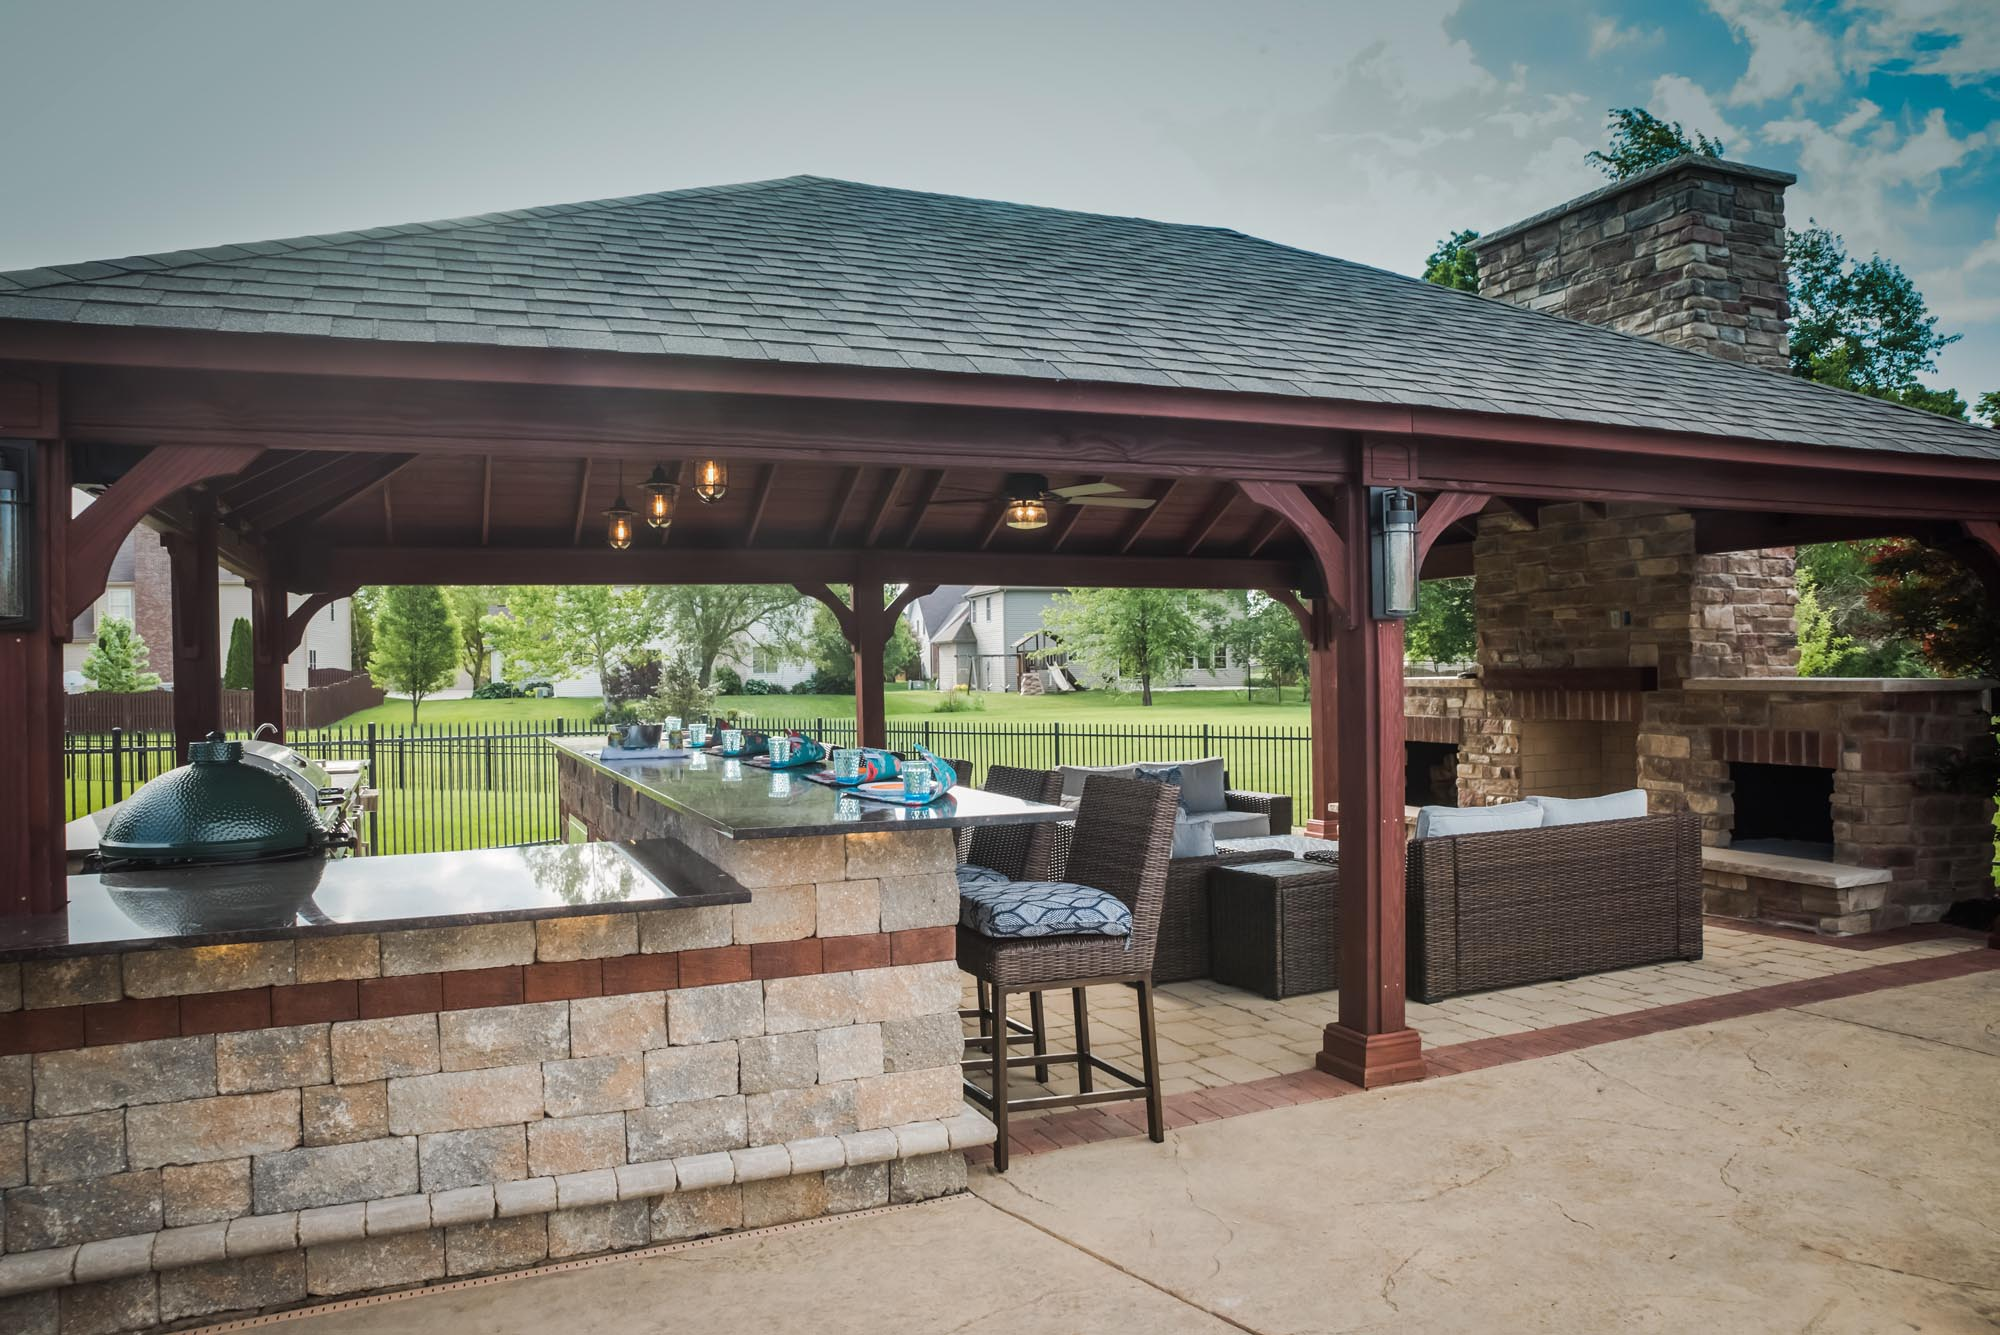 Calvin landscape outdoor pavilion with grilling area